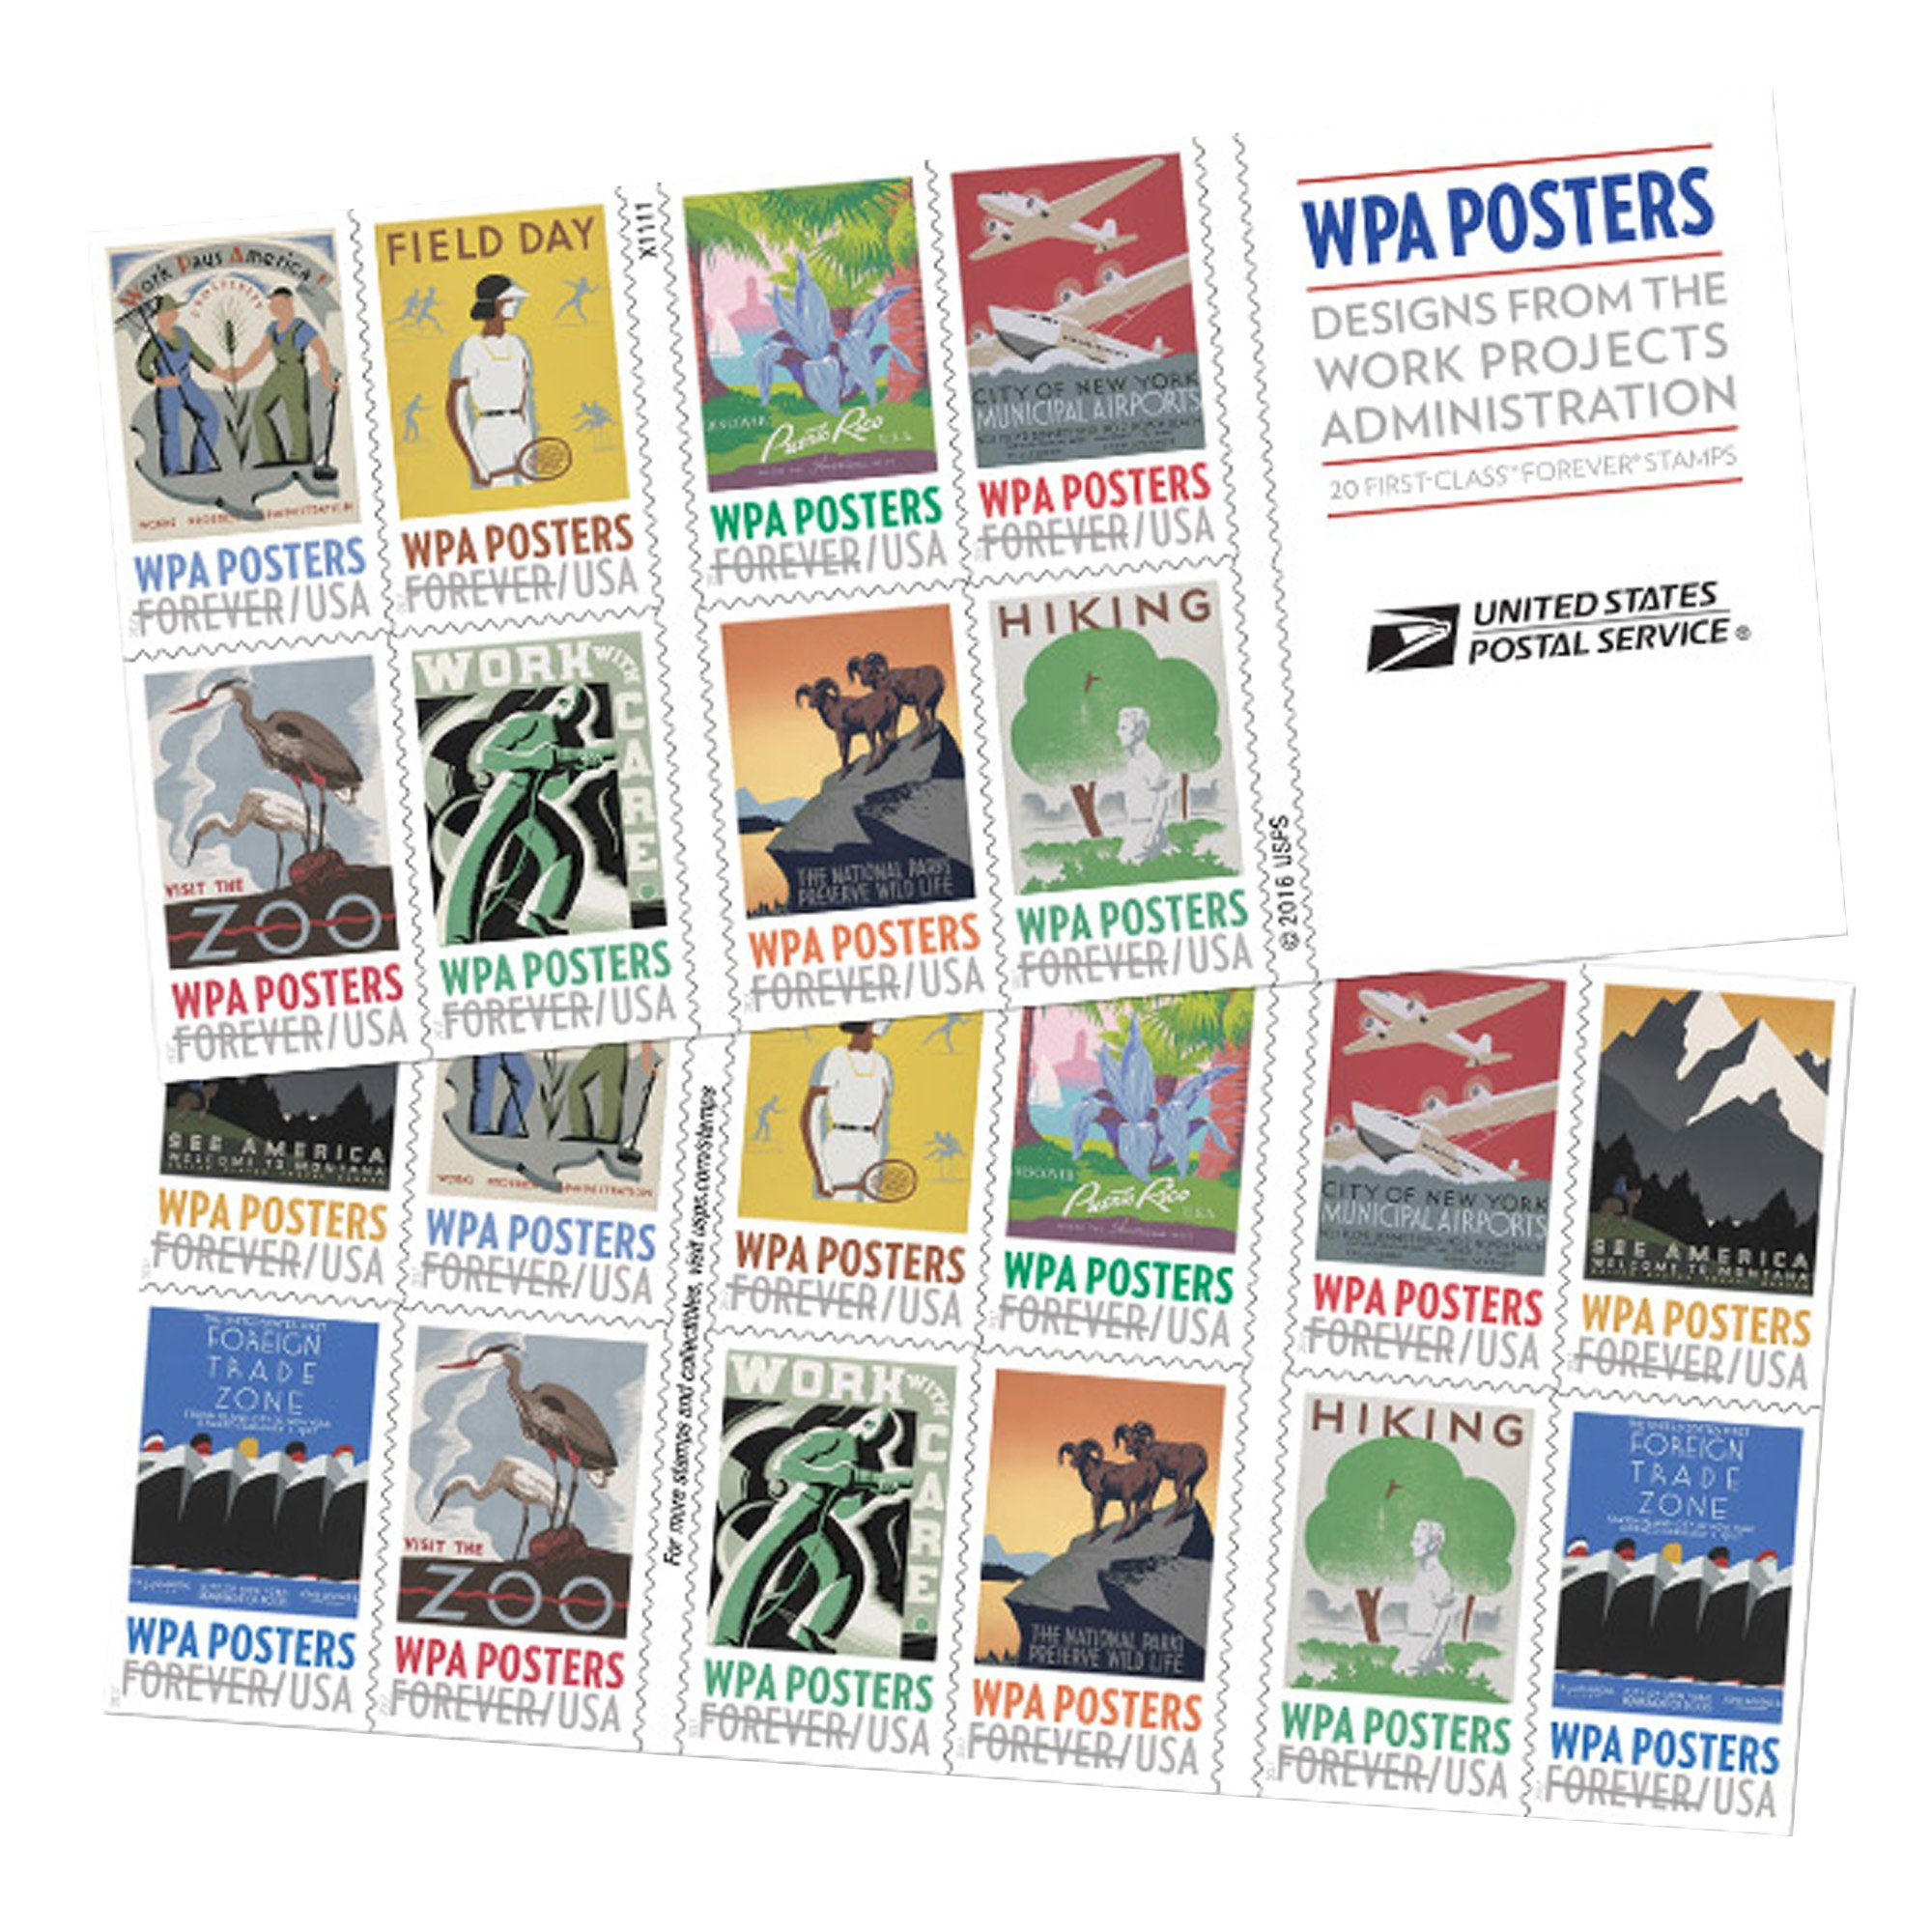 Amazon.com: WPA Posters book of 20 Forever USPS Postage Stamp Work Projects  Administration (1 book of 20 stamps): Office Products